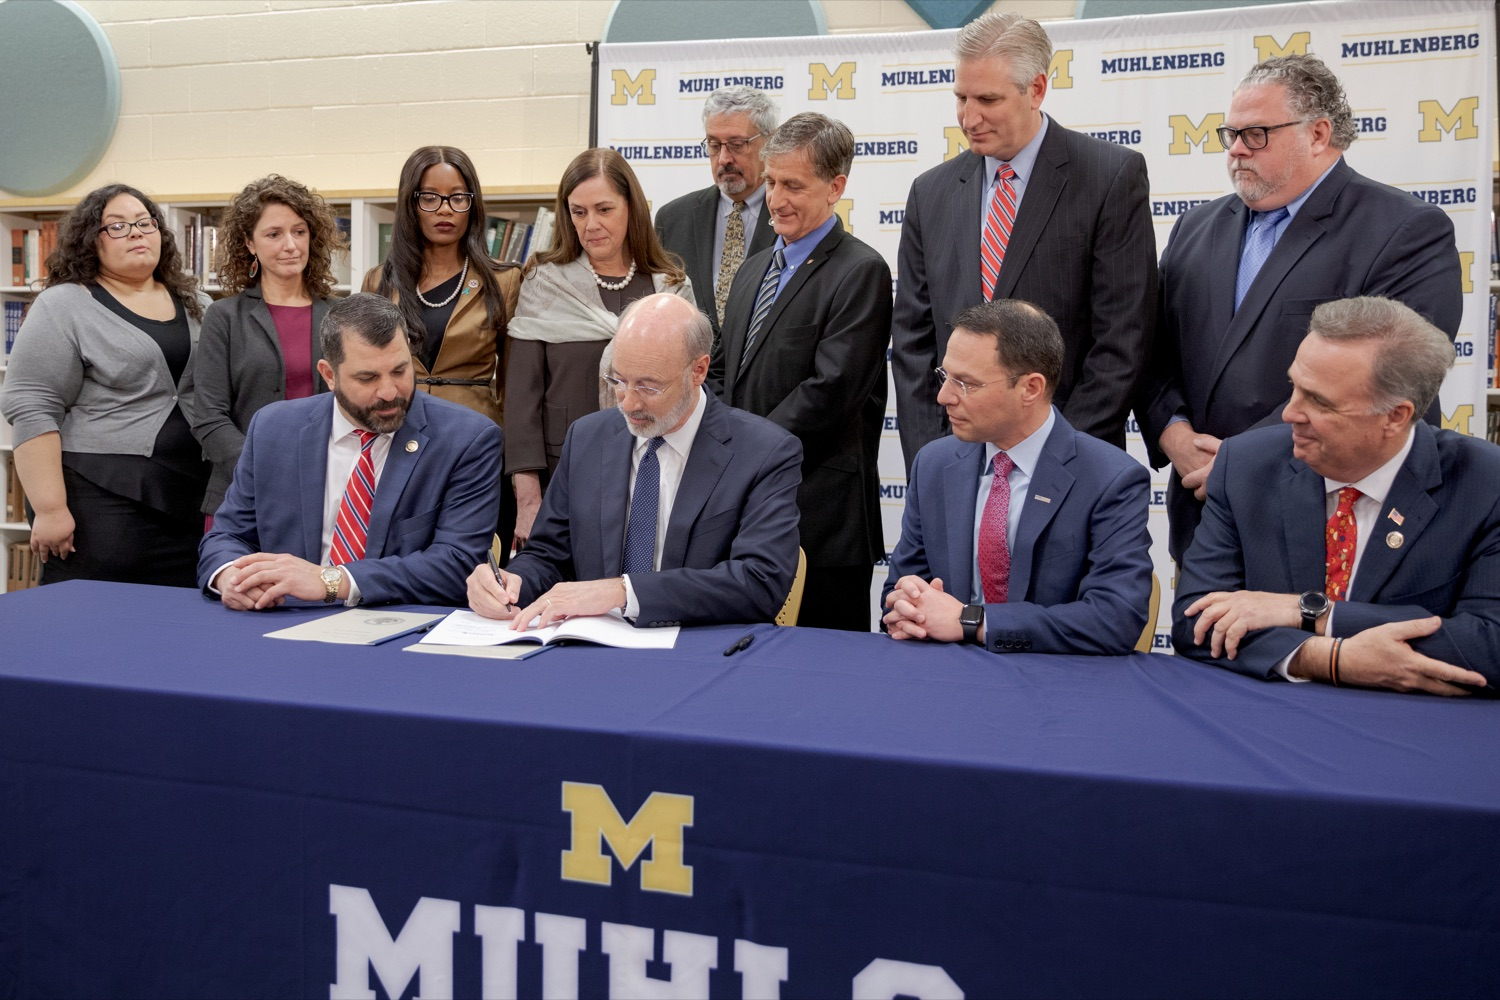 """<a href=""""http://filesource.abacast.com/commonwealthofpa/photo/17628_GOV_AG_Bill_Signing_NK_006.JPG"""" target=""""_blank"""">⇣Download Photo<br></a>From left; State Rep. Mark Rozzi, Governor Tom Wolf, Attorney General Josh Shapiro, and State Rep. Jim Gregory sign a package of three bills, which mirror three of the Grand Jurys recommendations on addressing the statute of limitations for victims of child sexual abuse, inside Muhlenberg High School on Tuesday, November 26, 2019."""